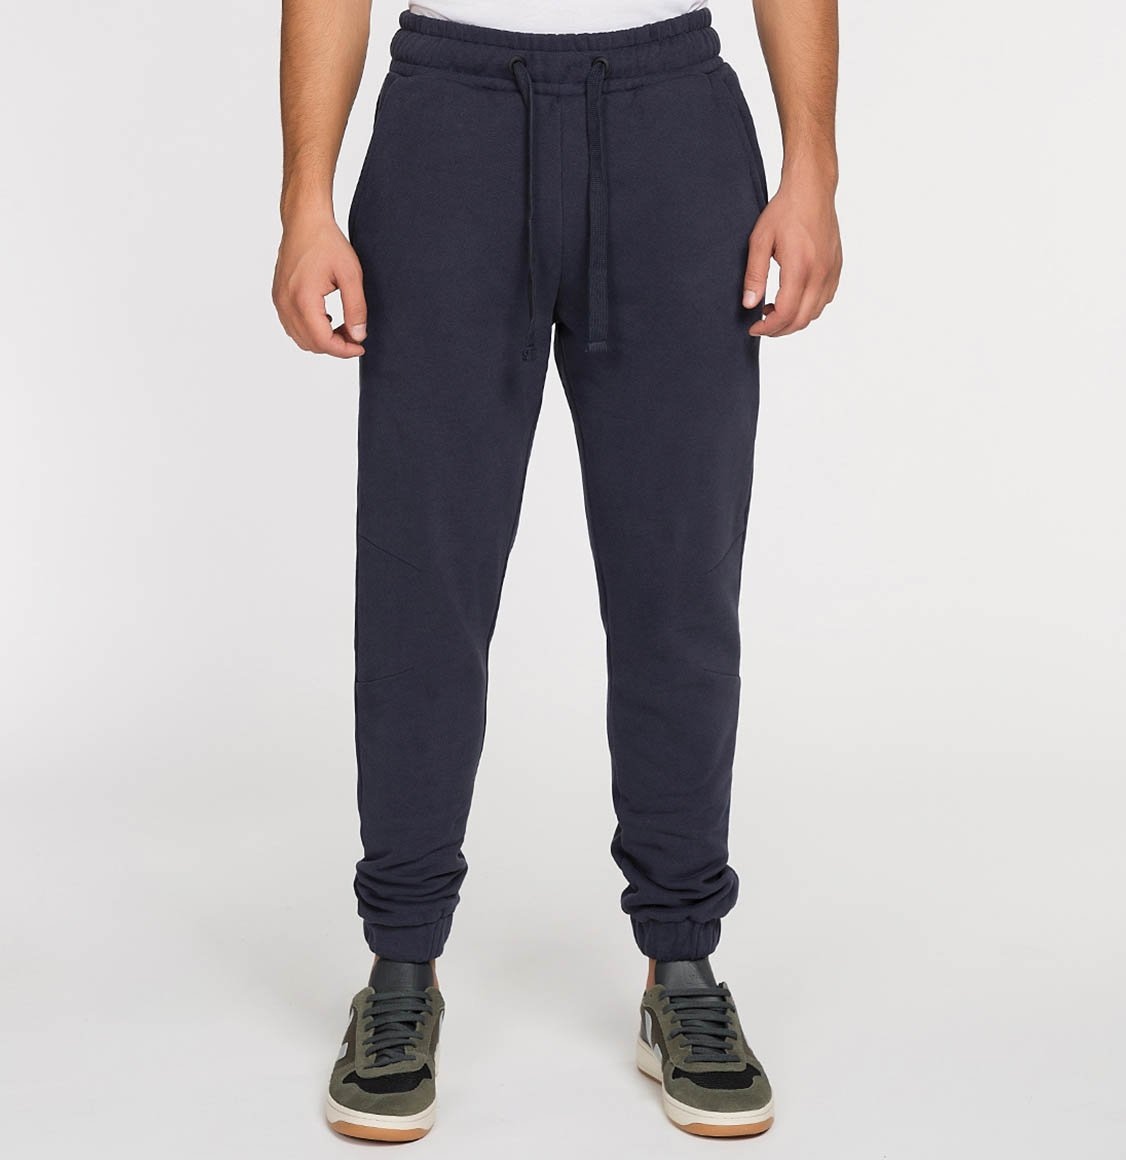 The Project Garments Regular Fit Cotton Sweatpants Navy Blue